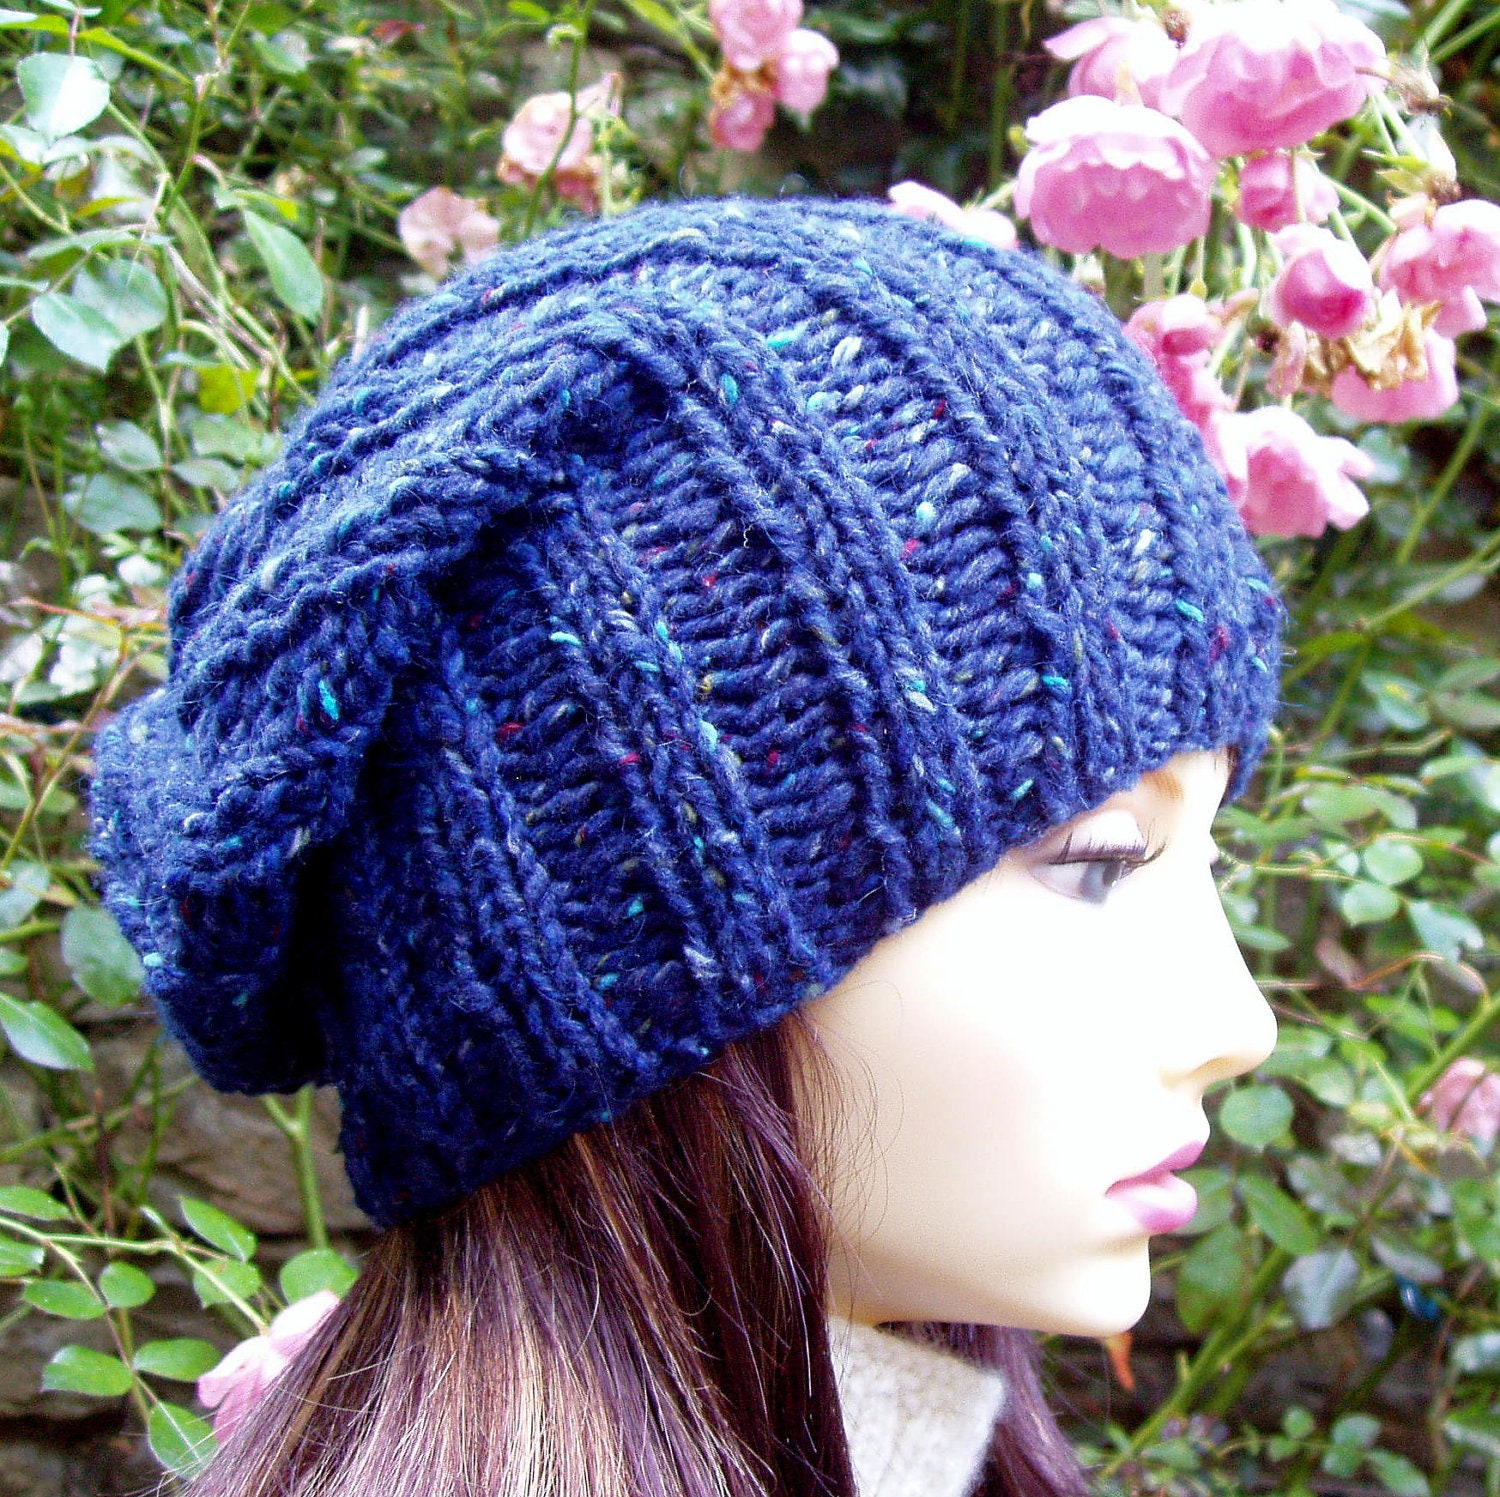 Knitting A Hat In The Round With Double Pointed Needles : Items similar to beanie knitting pattern for seattle